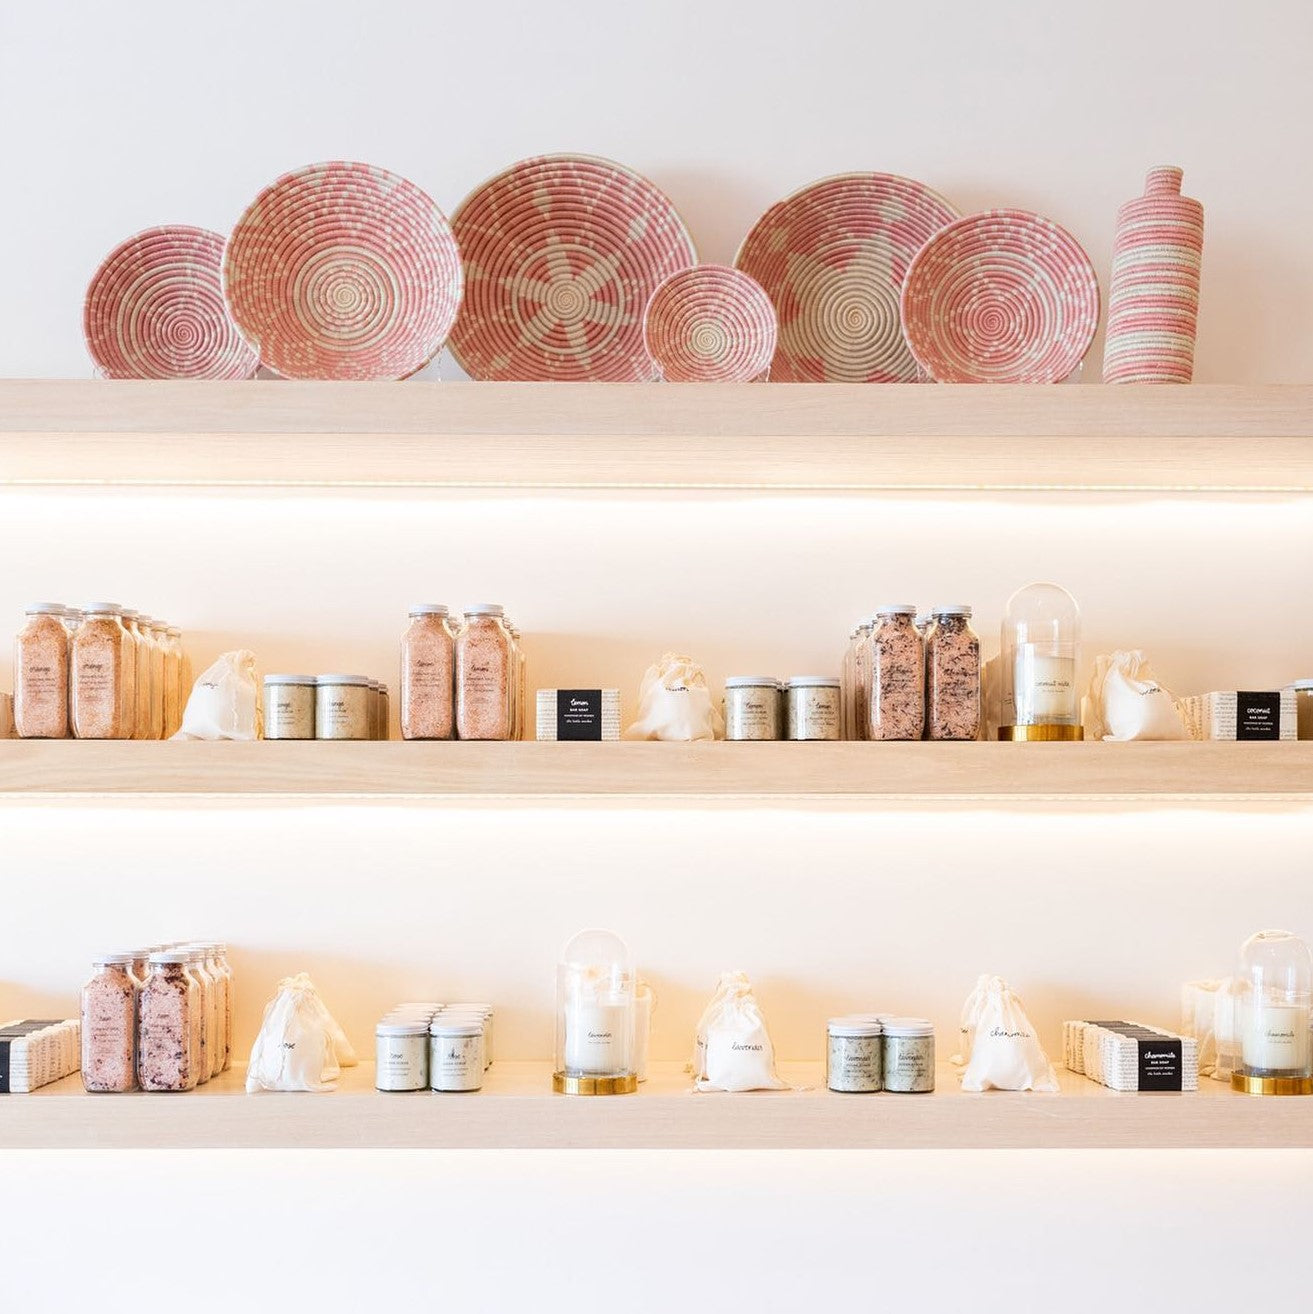 Small businesses like The Little Market compete with Amazon with ethical products like these beautiful handwoven bowls and wellness products.